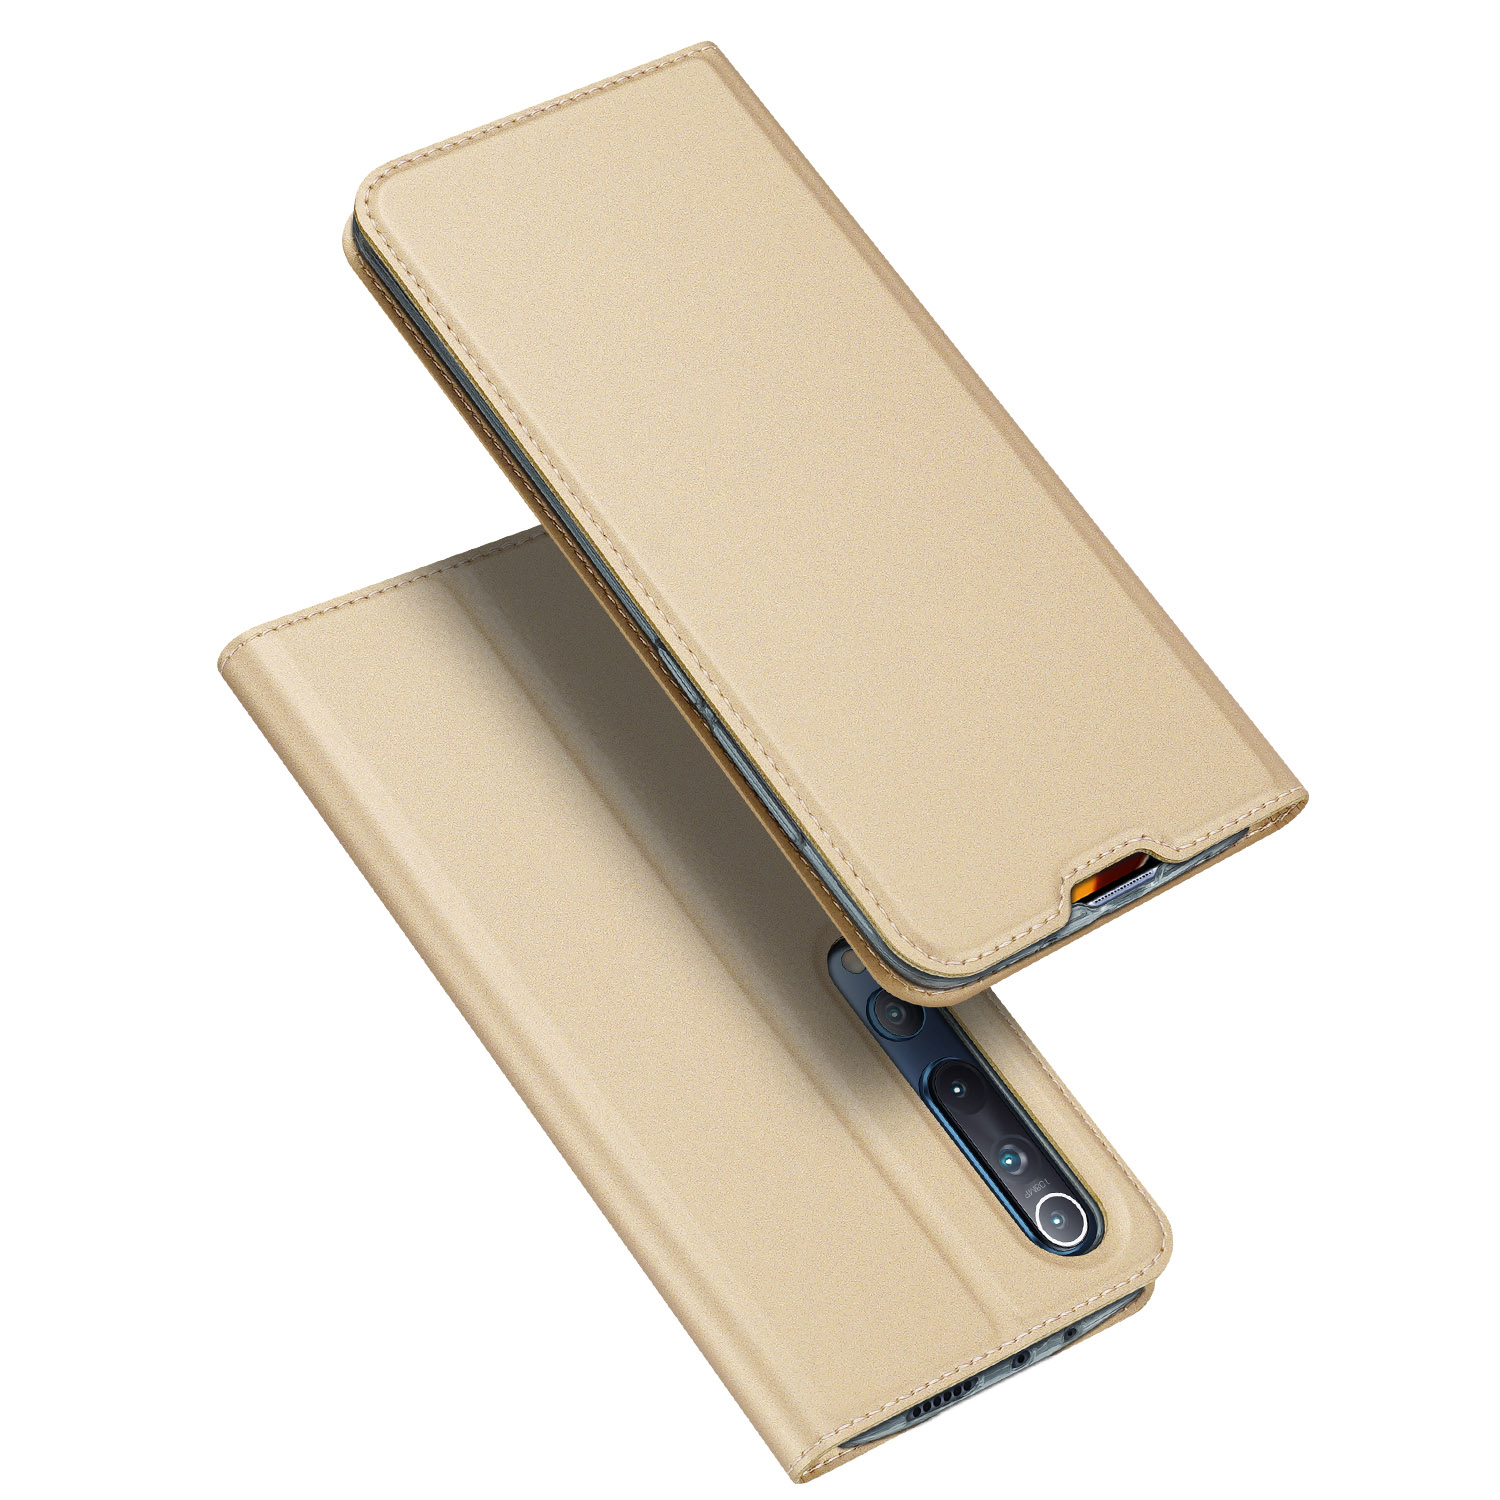 DUX DUCIS For XIAOMI 10/MI 10 Pro Fall Resistant Mobile Phone Cover Magnetic Leather Protective Case with Cards Slot Bracket Tyrant Gold